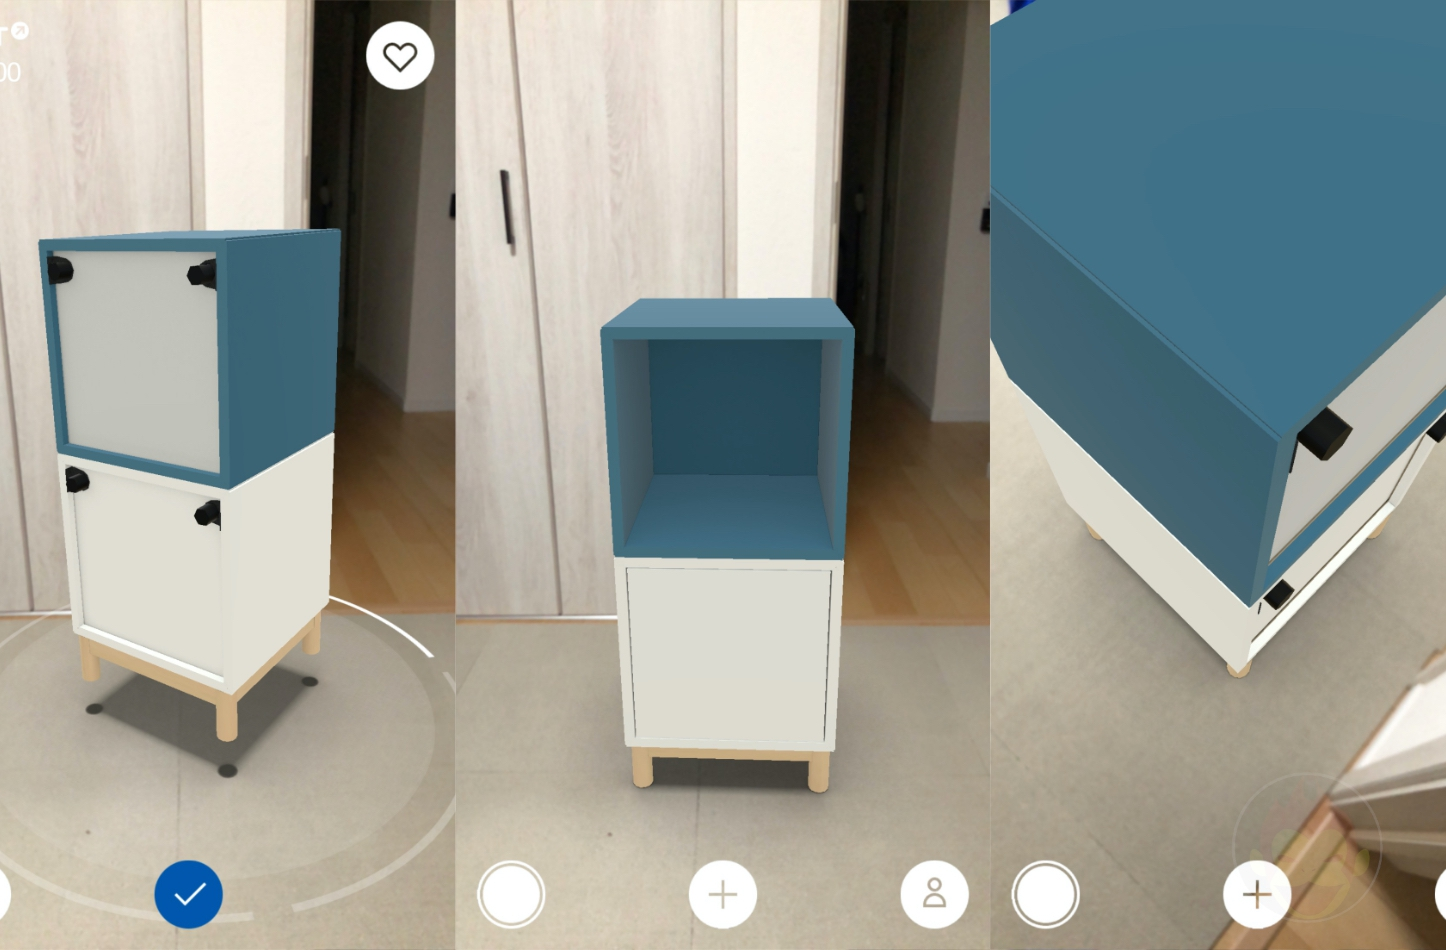 Ikea App is so much fun